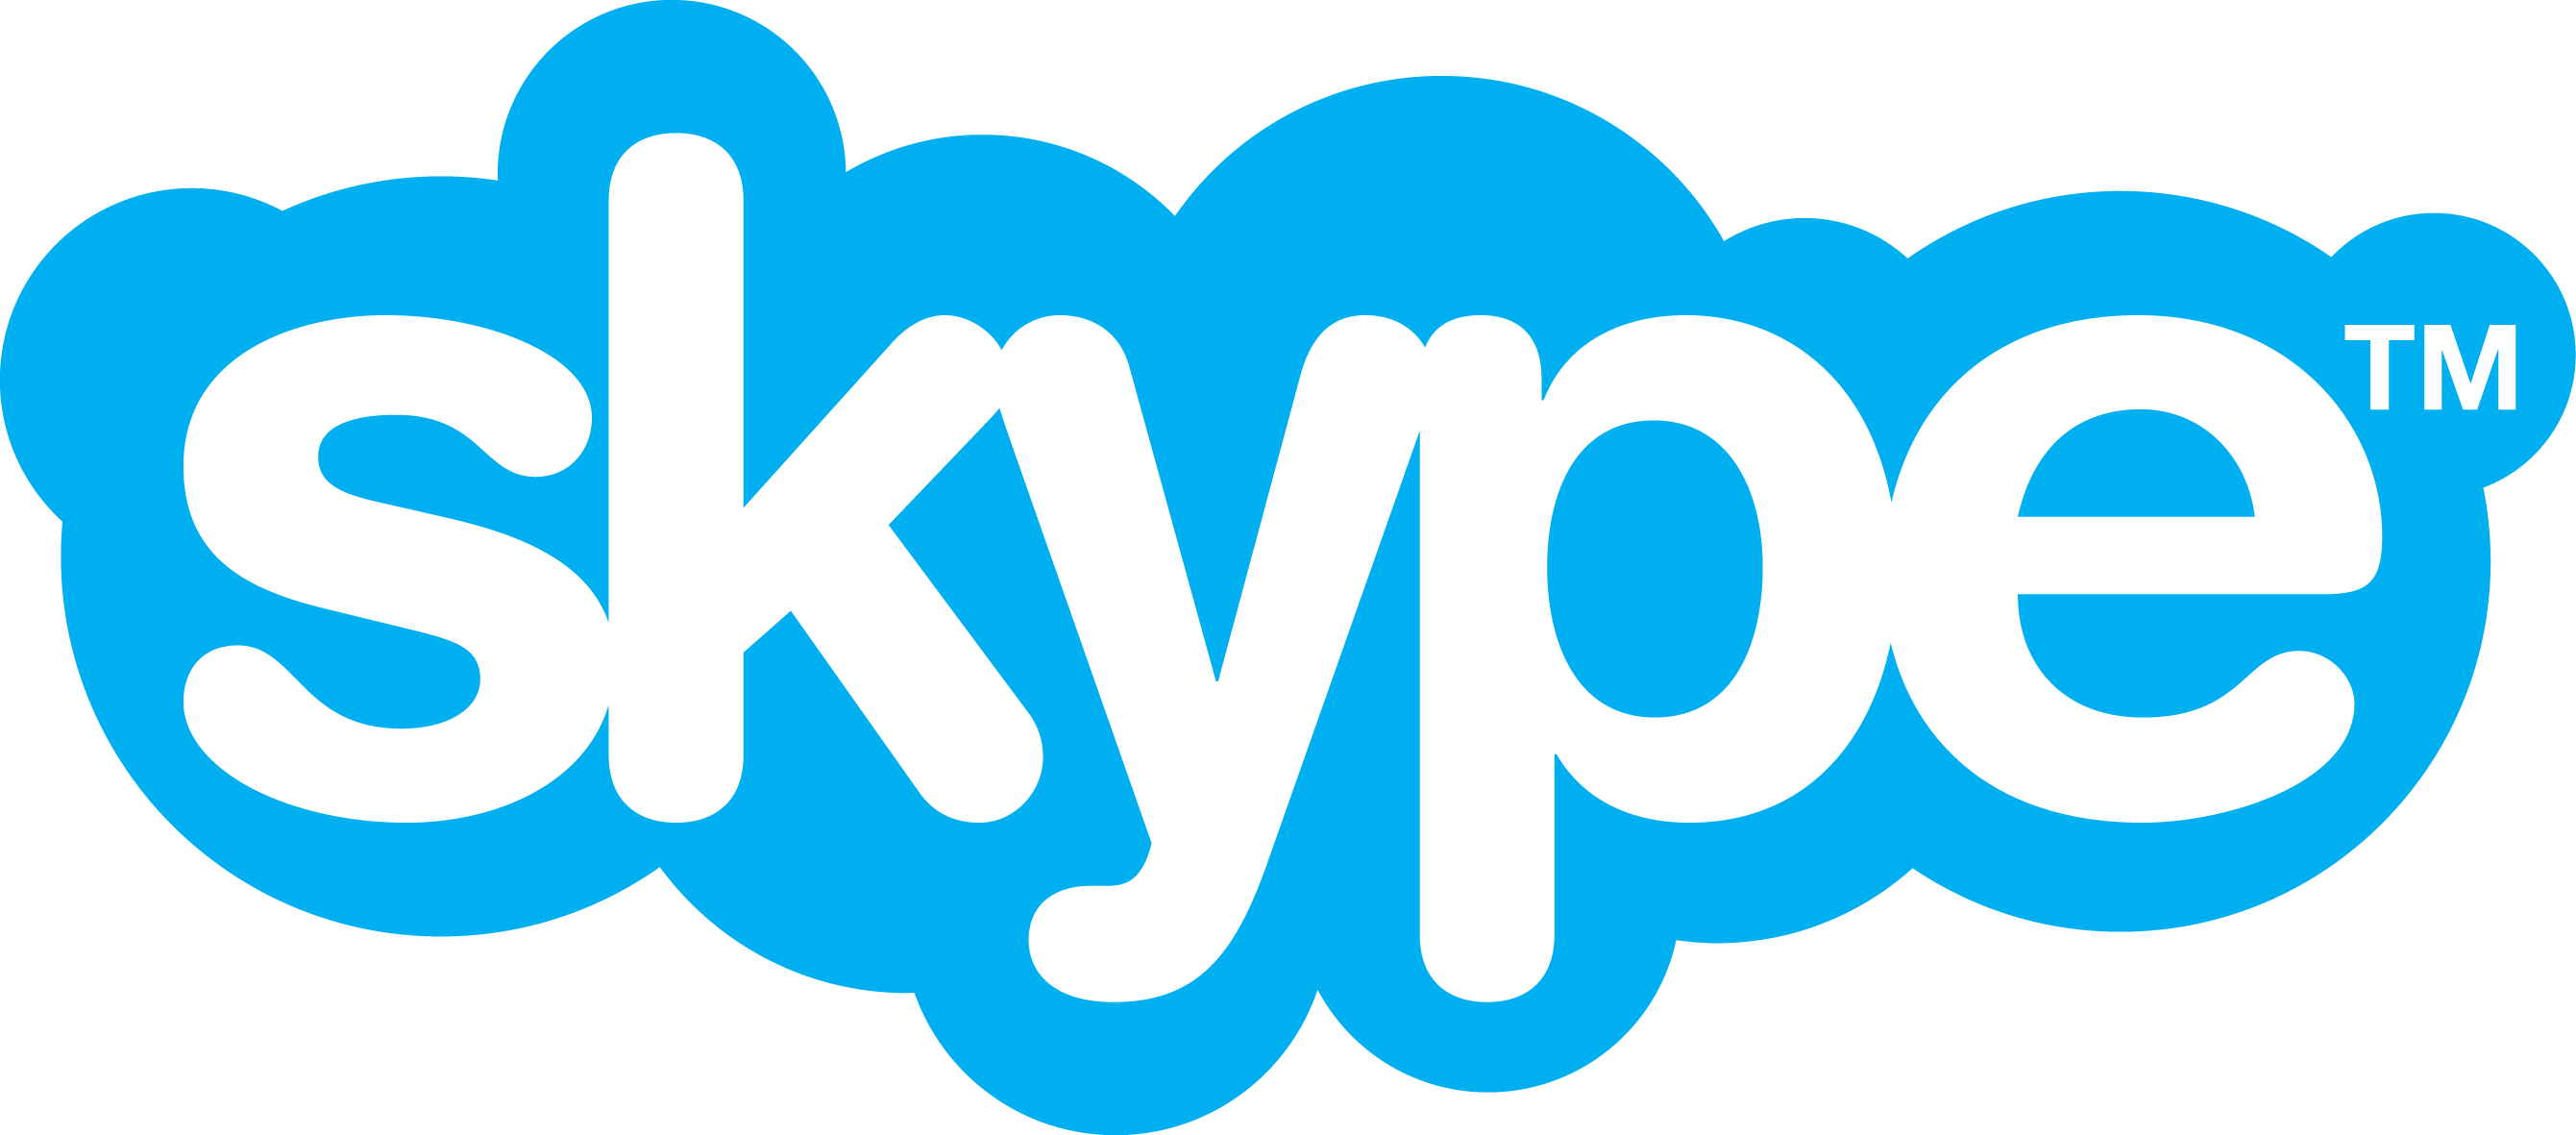 Skype was acquired by Microsoft for $8.5bn